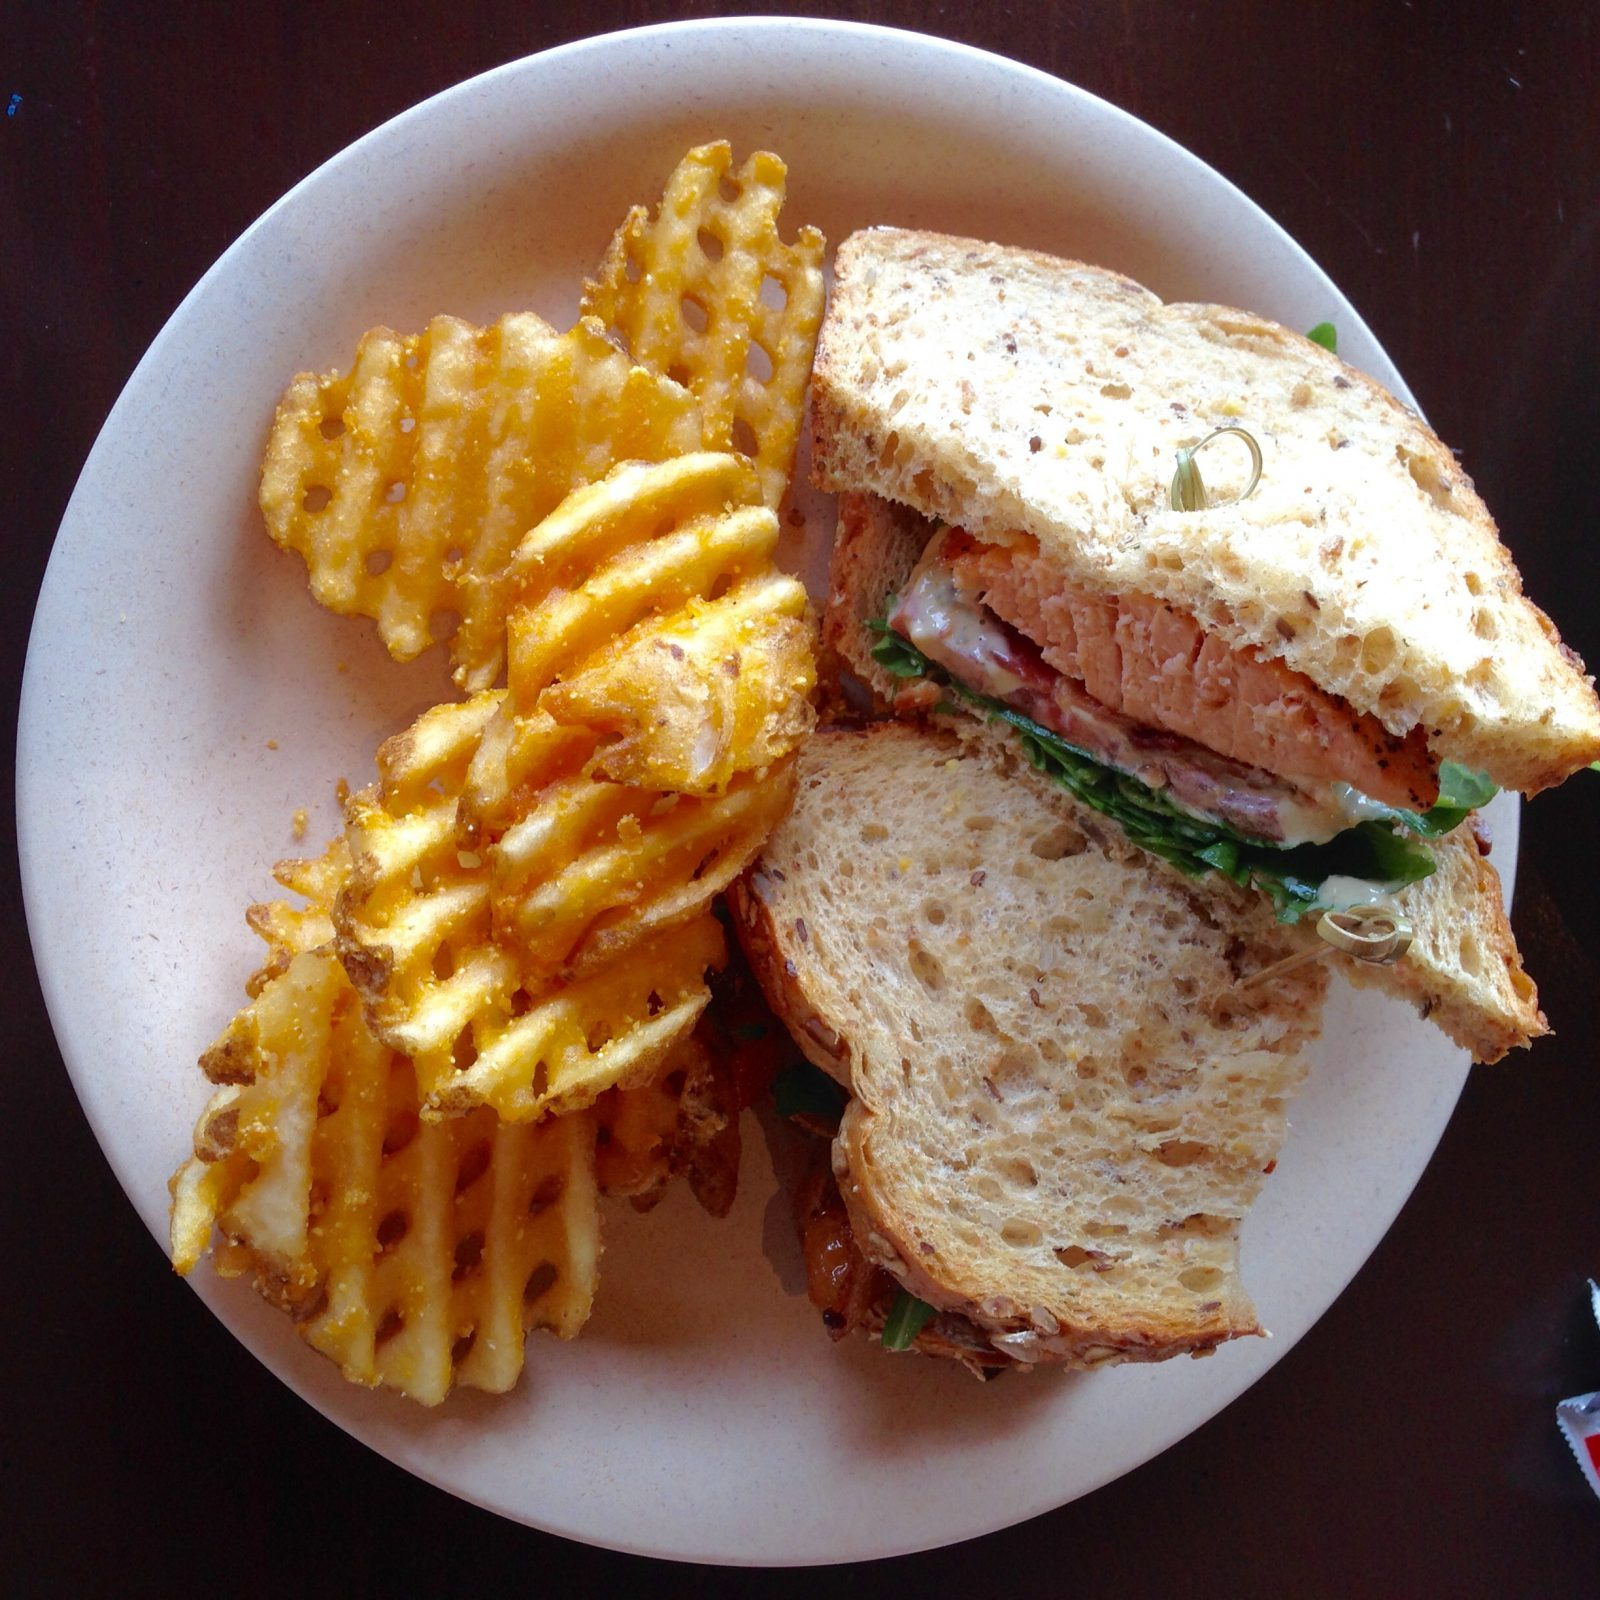 Salmon BLT and waffle fries from geyser point